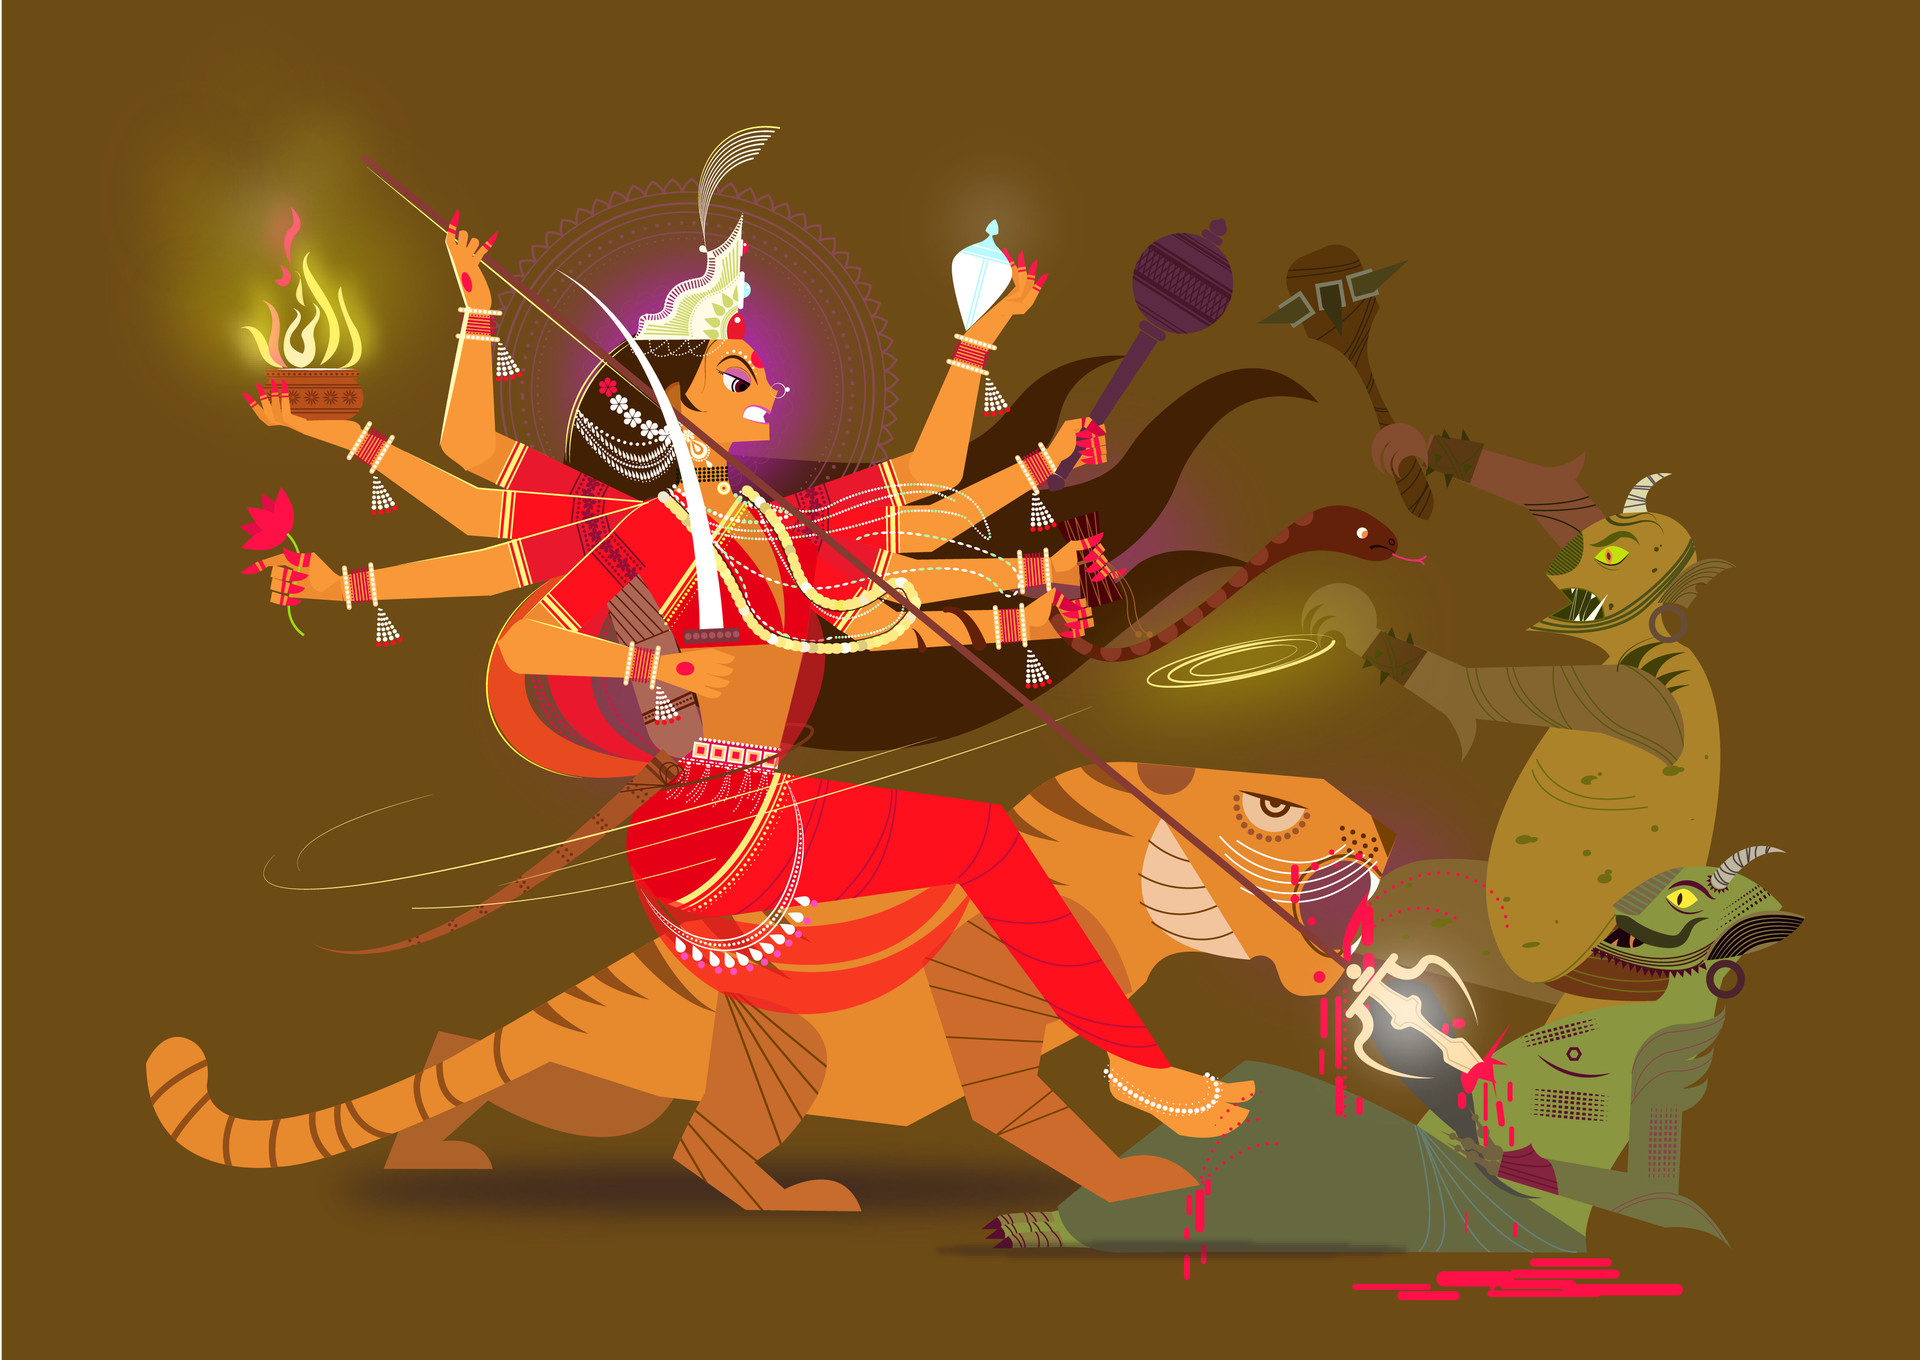 digital art fight by ram bhangad